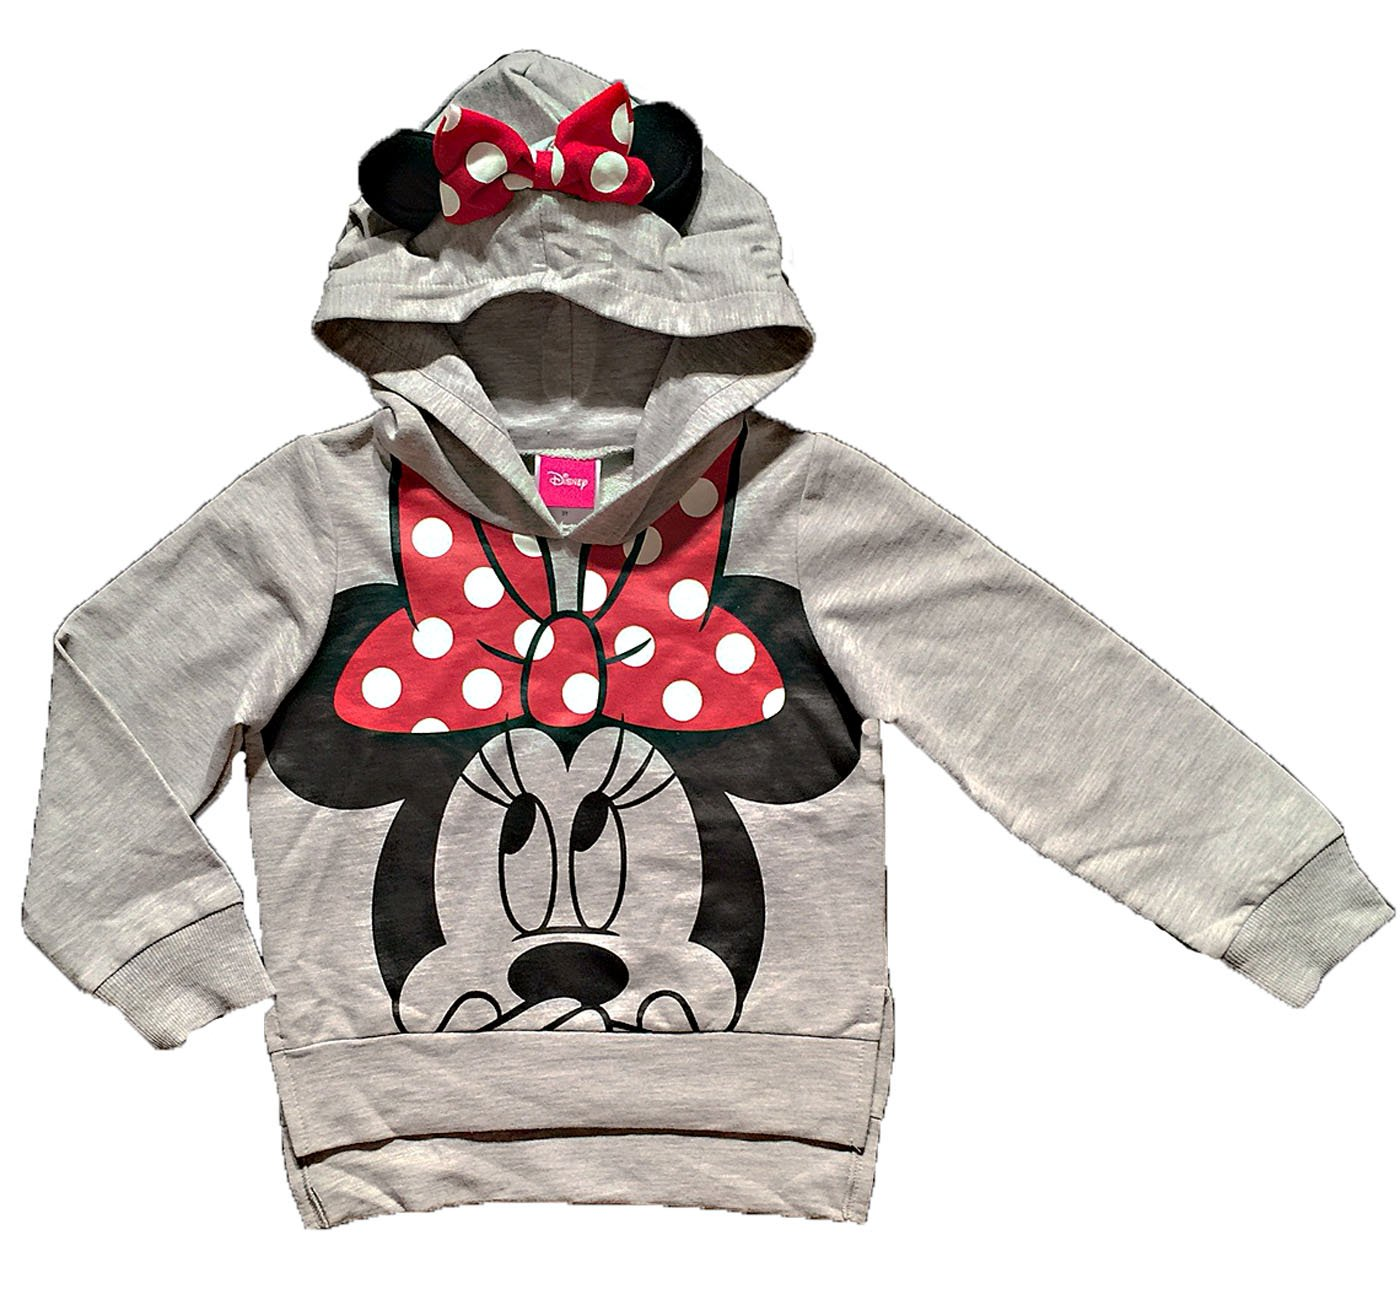 Disney Minnie Mouse Little Girls Lightweight Hoodie Shirt (3T)